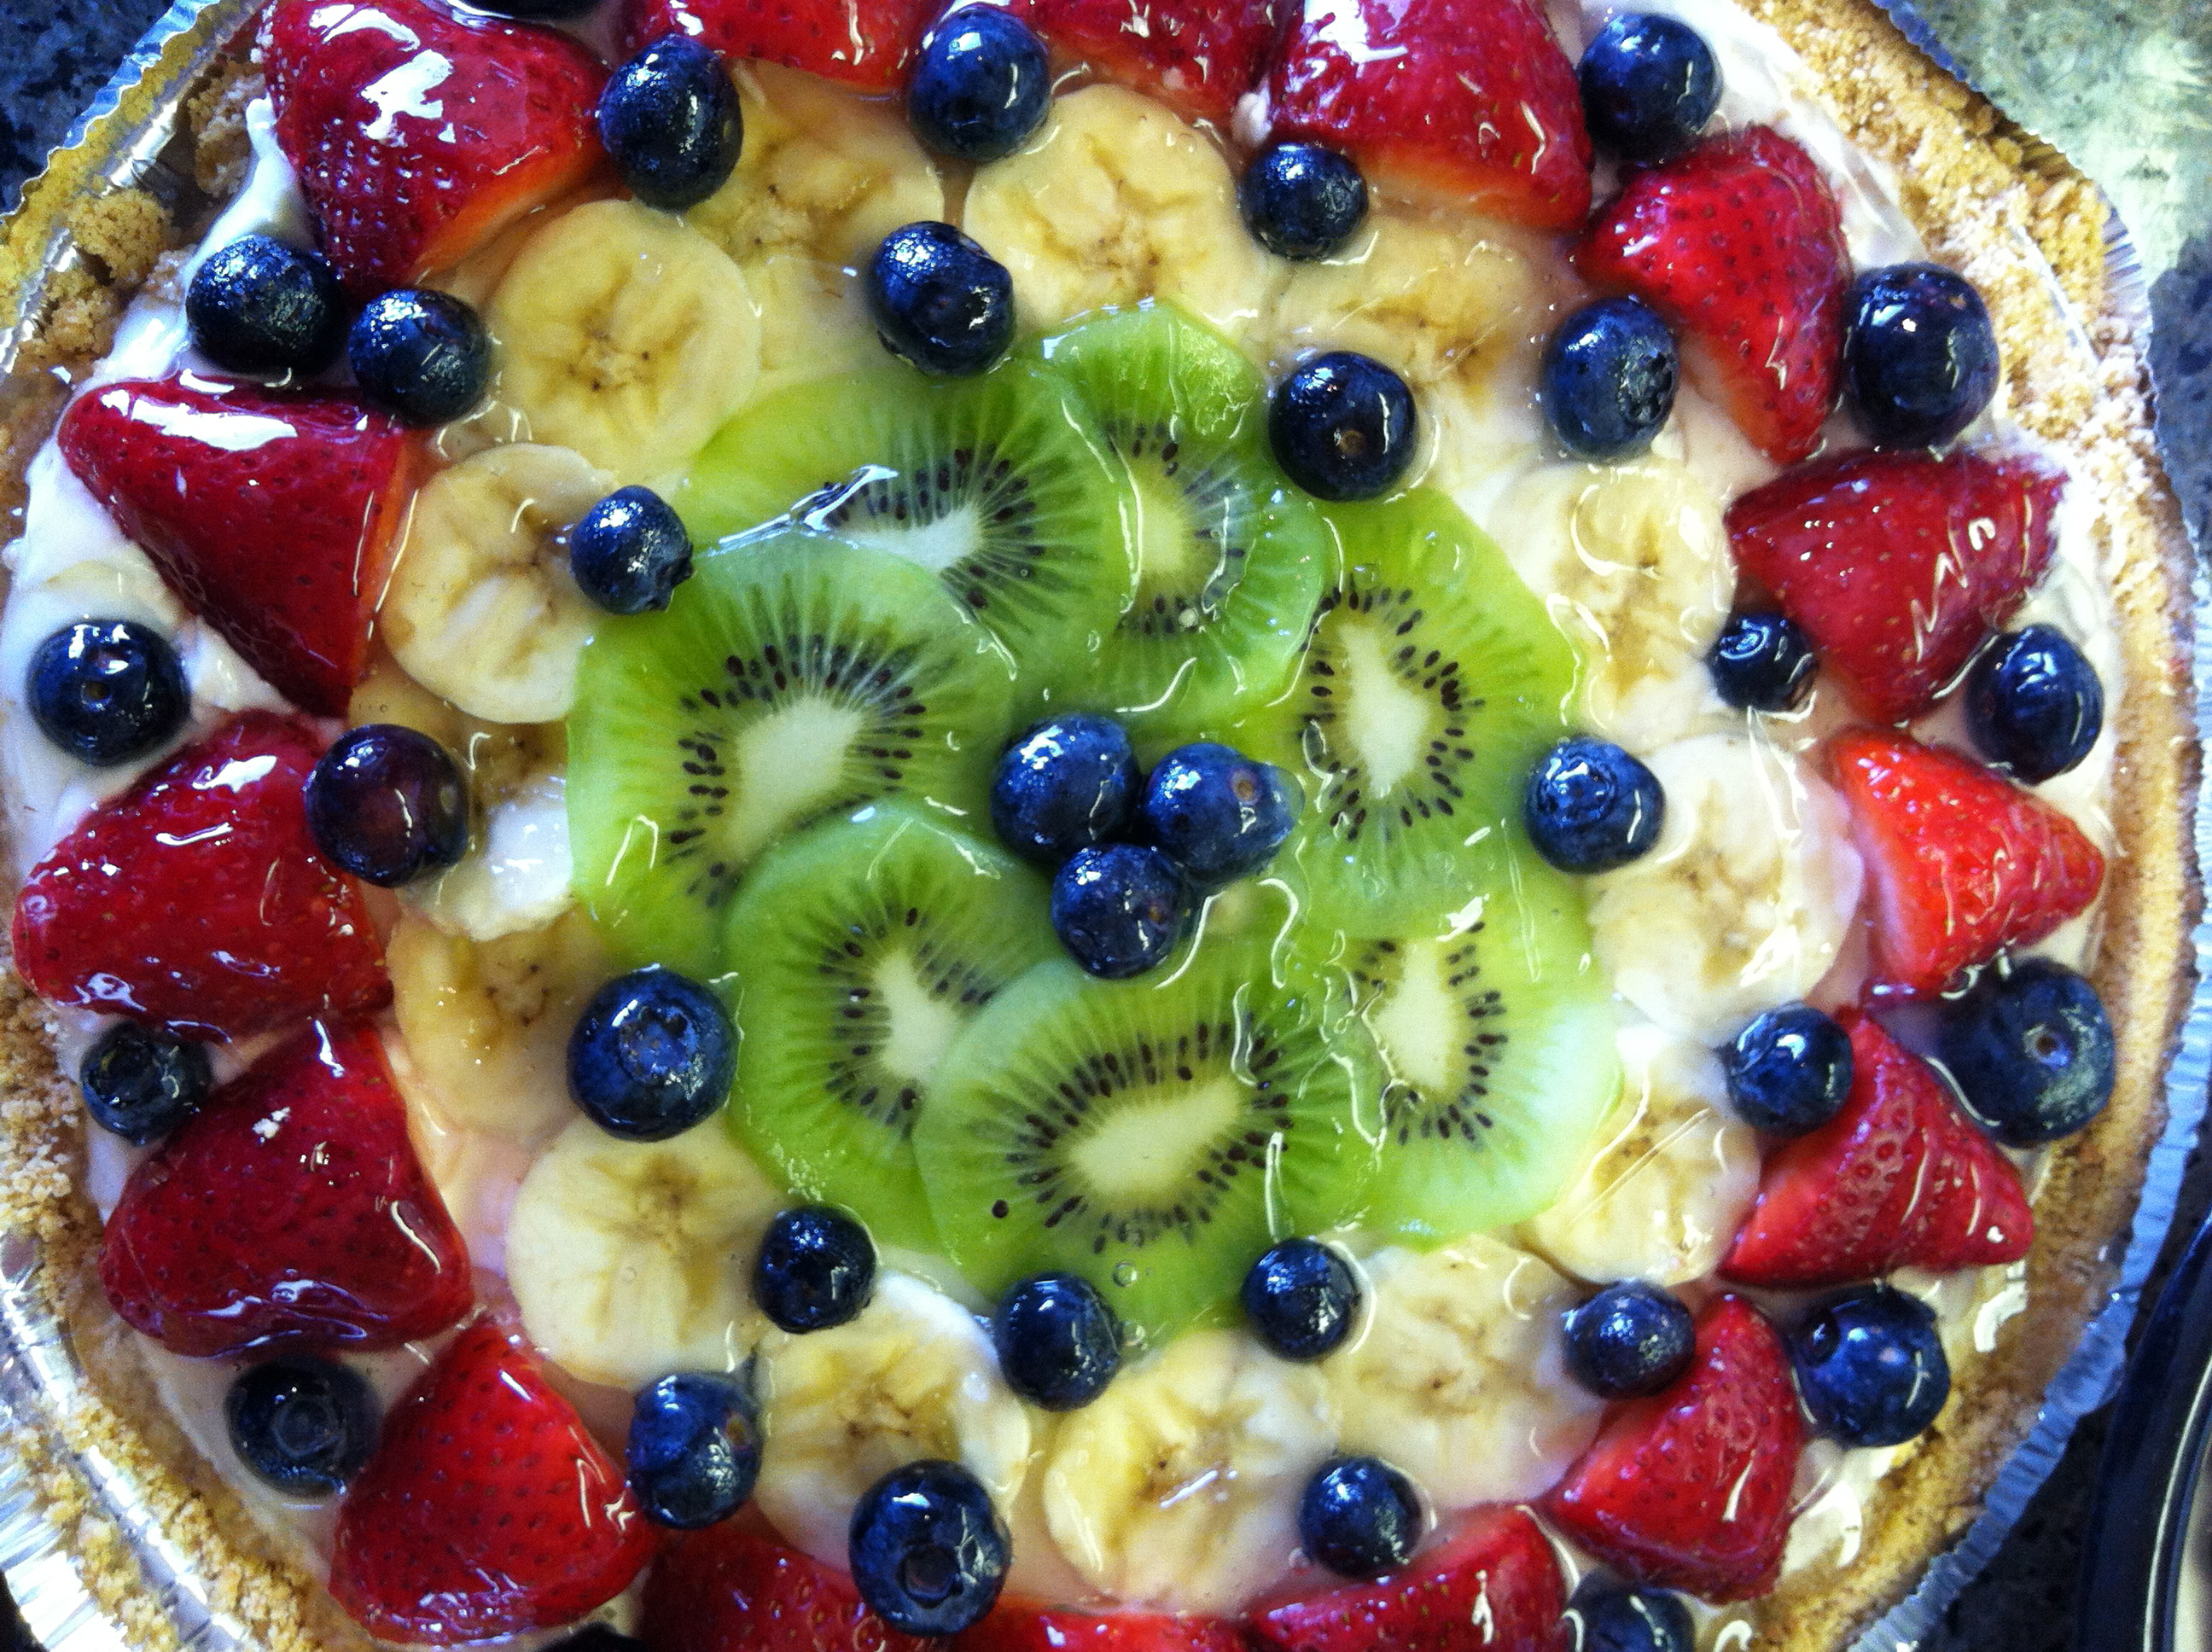 Bavarian Cream Fruit Tart